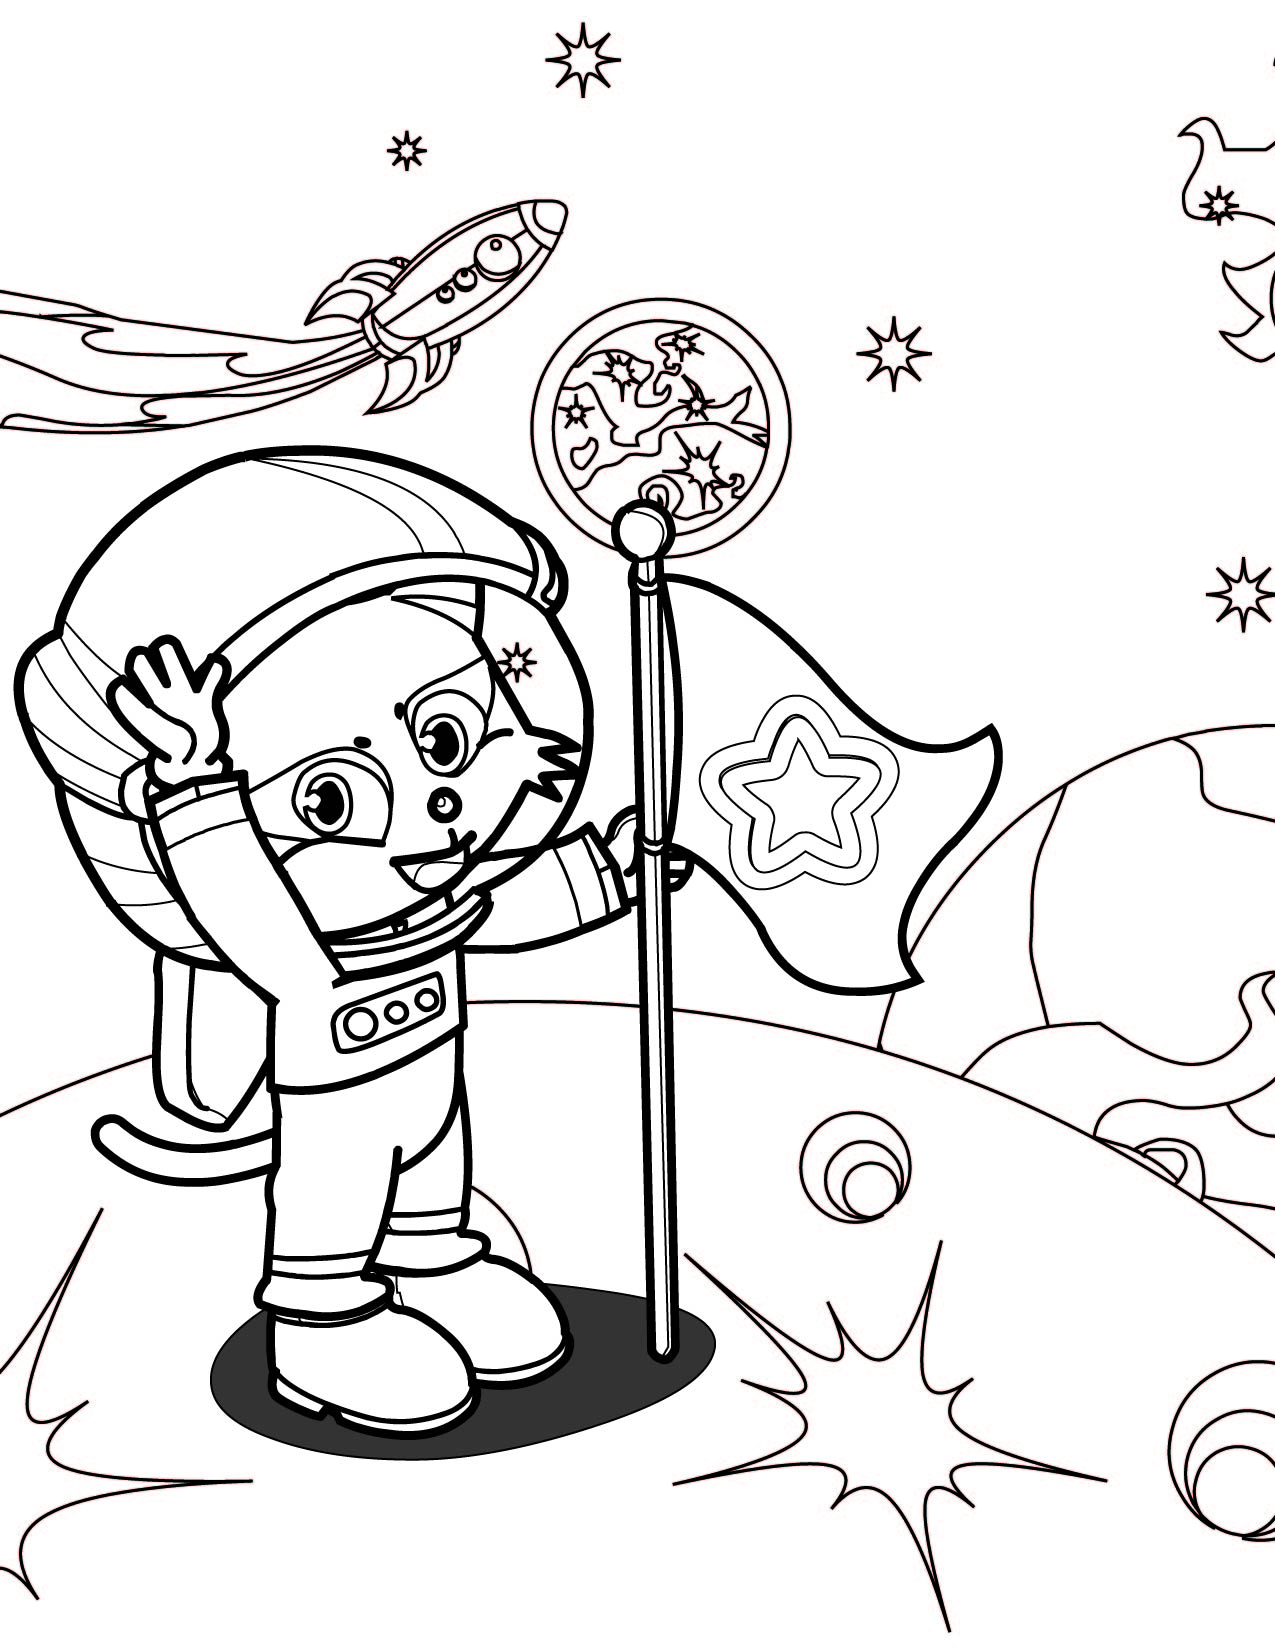 Astronaut Coloring Page Handipoints